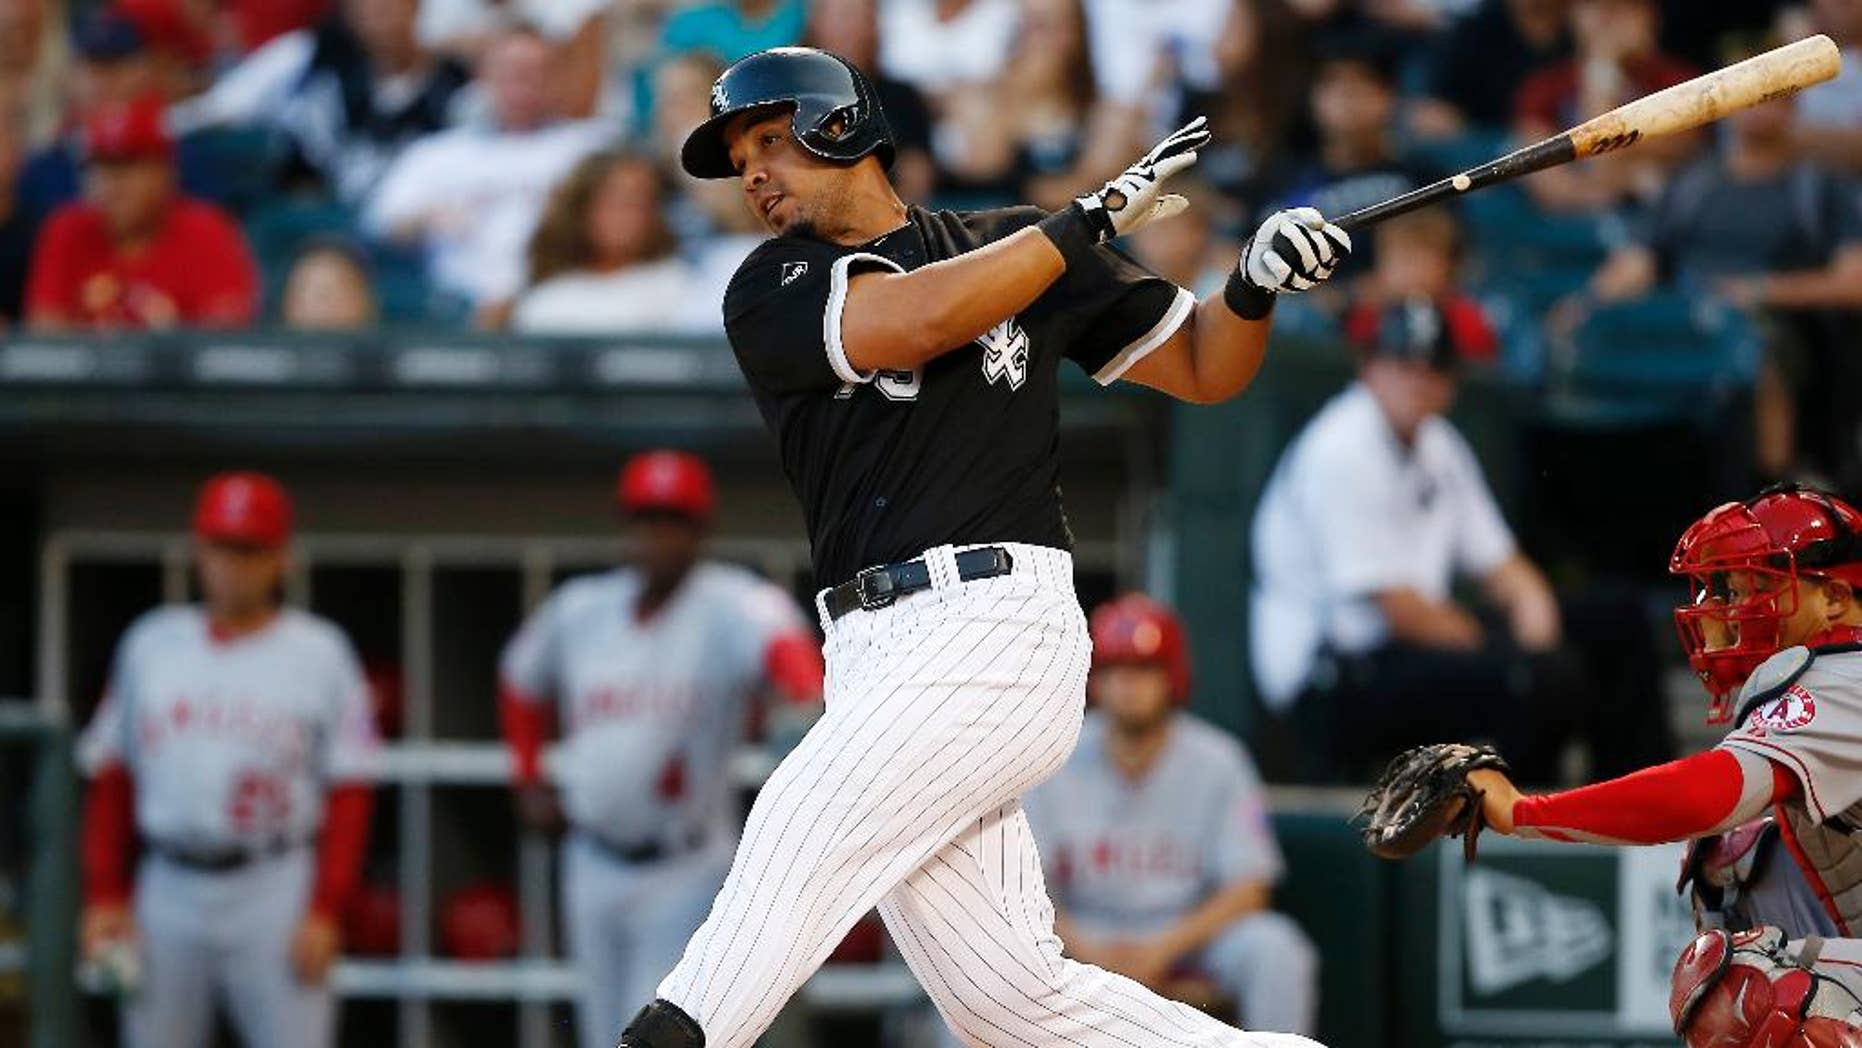 Chicago White Sox's Jose Abreu hits a single against the Los Angeles Angels during the first inning of the second baseball game of a double header on Tuesday, July 1, 2014, in Chicago. (AP Photo/Andrew A. Nelles)